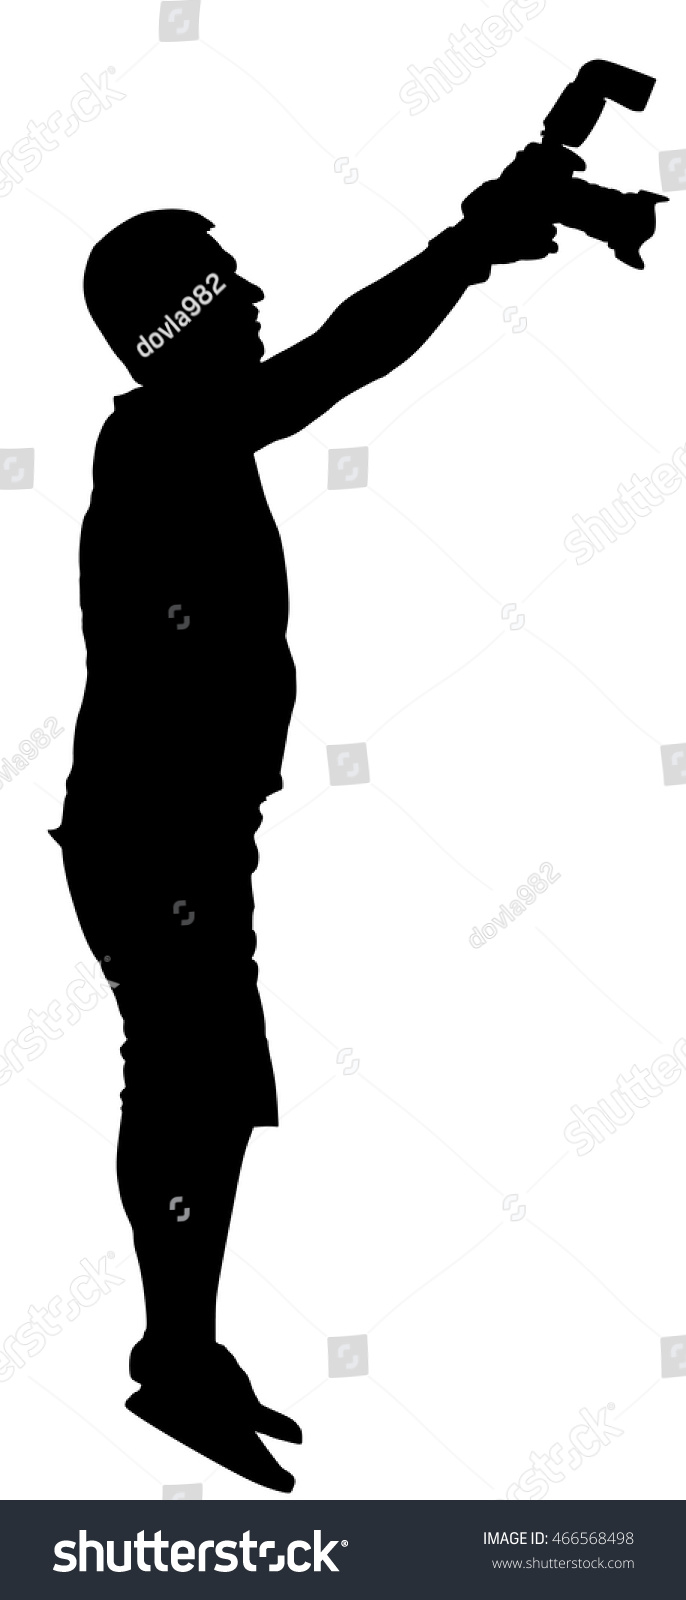 photographer paparazzi shooting on the event vector silhouette illustration isolated on white background